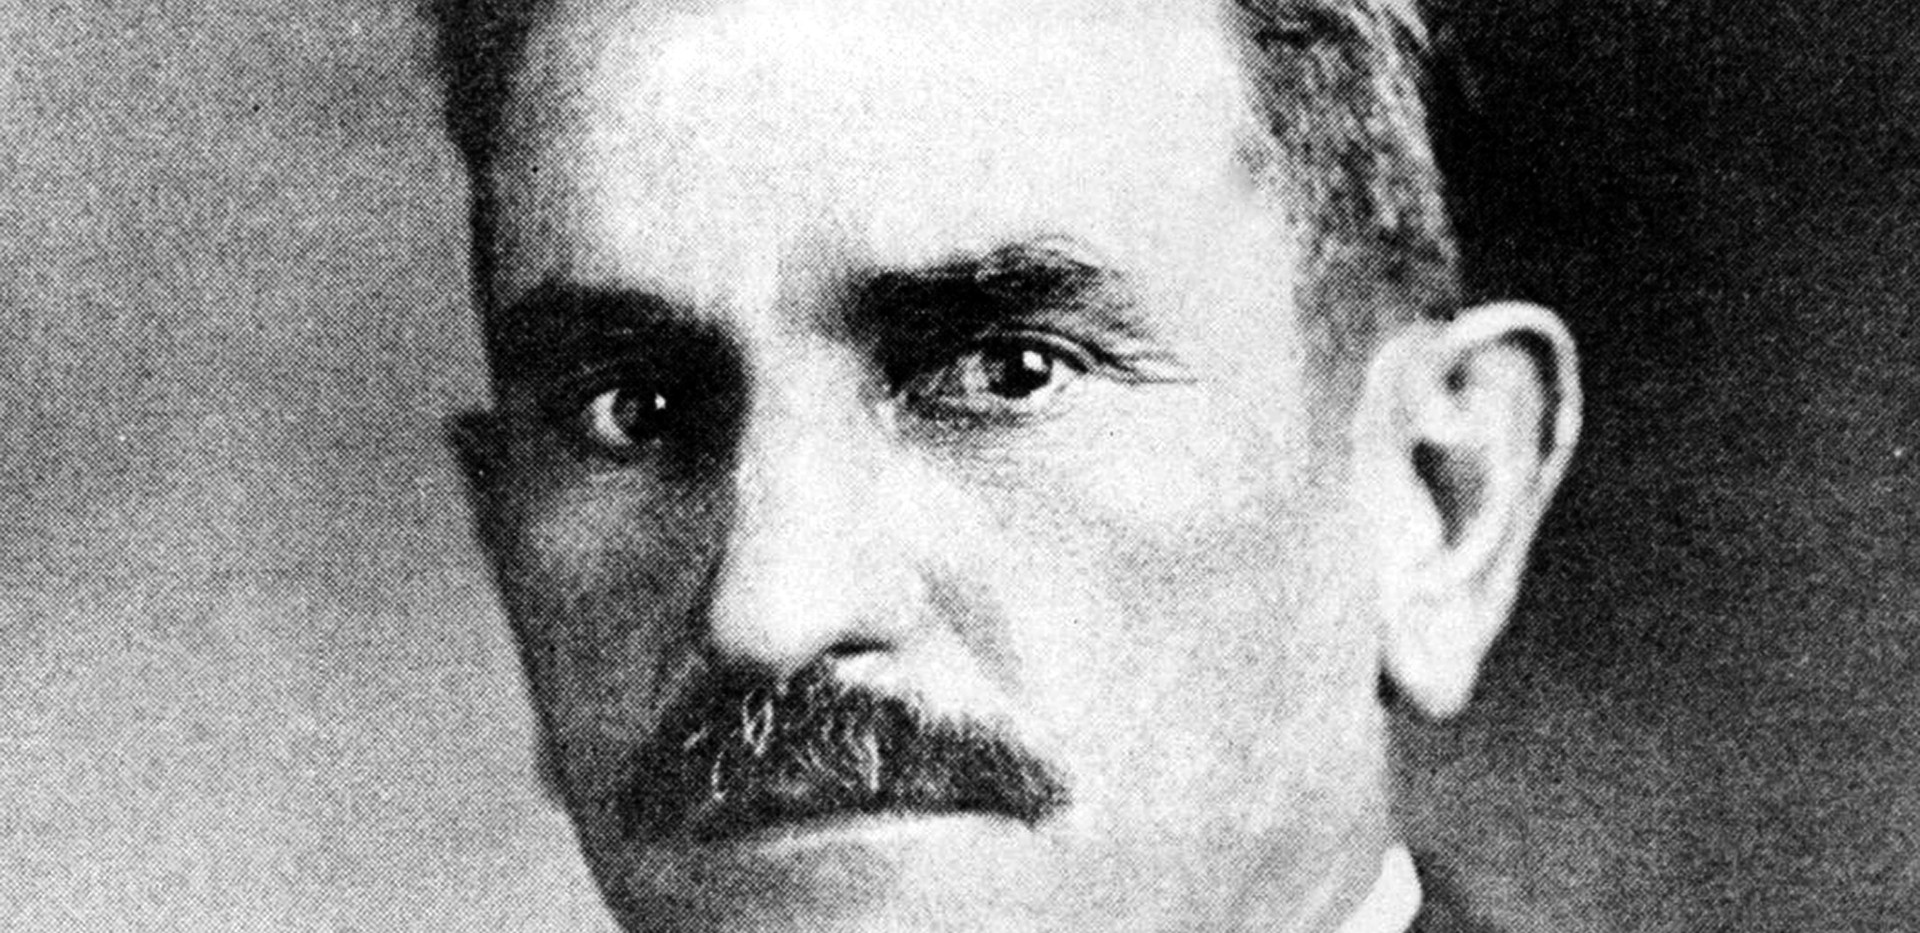 The 1880 Census lists about 20 Italian immigrant families already in Fresno County including the Badaraccos, the Spanos, the Sorannas, the Politos, the Gattis, the Marcheses and the Vinolas. Naples-born Domenico Imperatrice, Sr., pictured here, was the head of one of the first Italian families to settle locally, around 1885, with wife, Isabella.